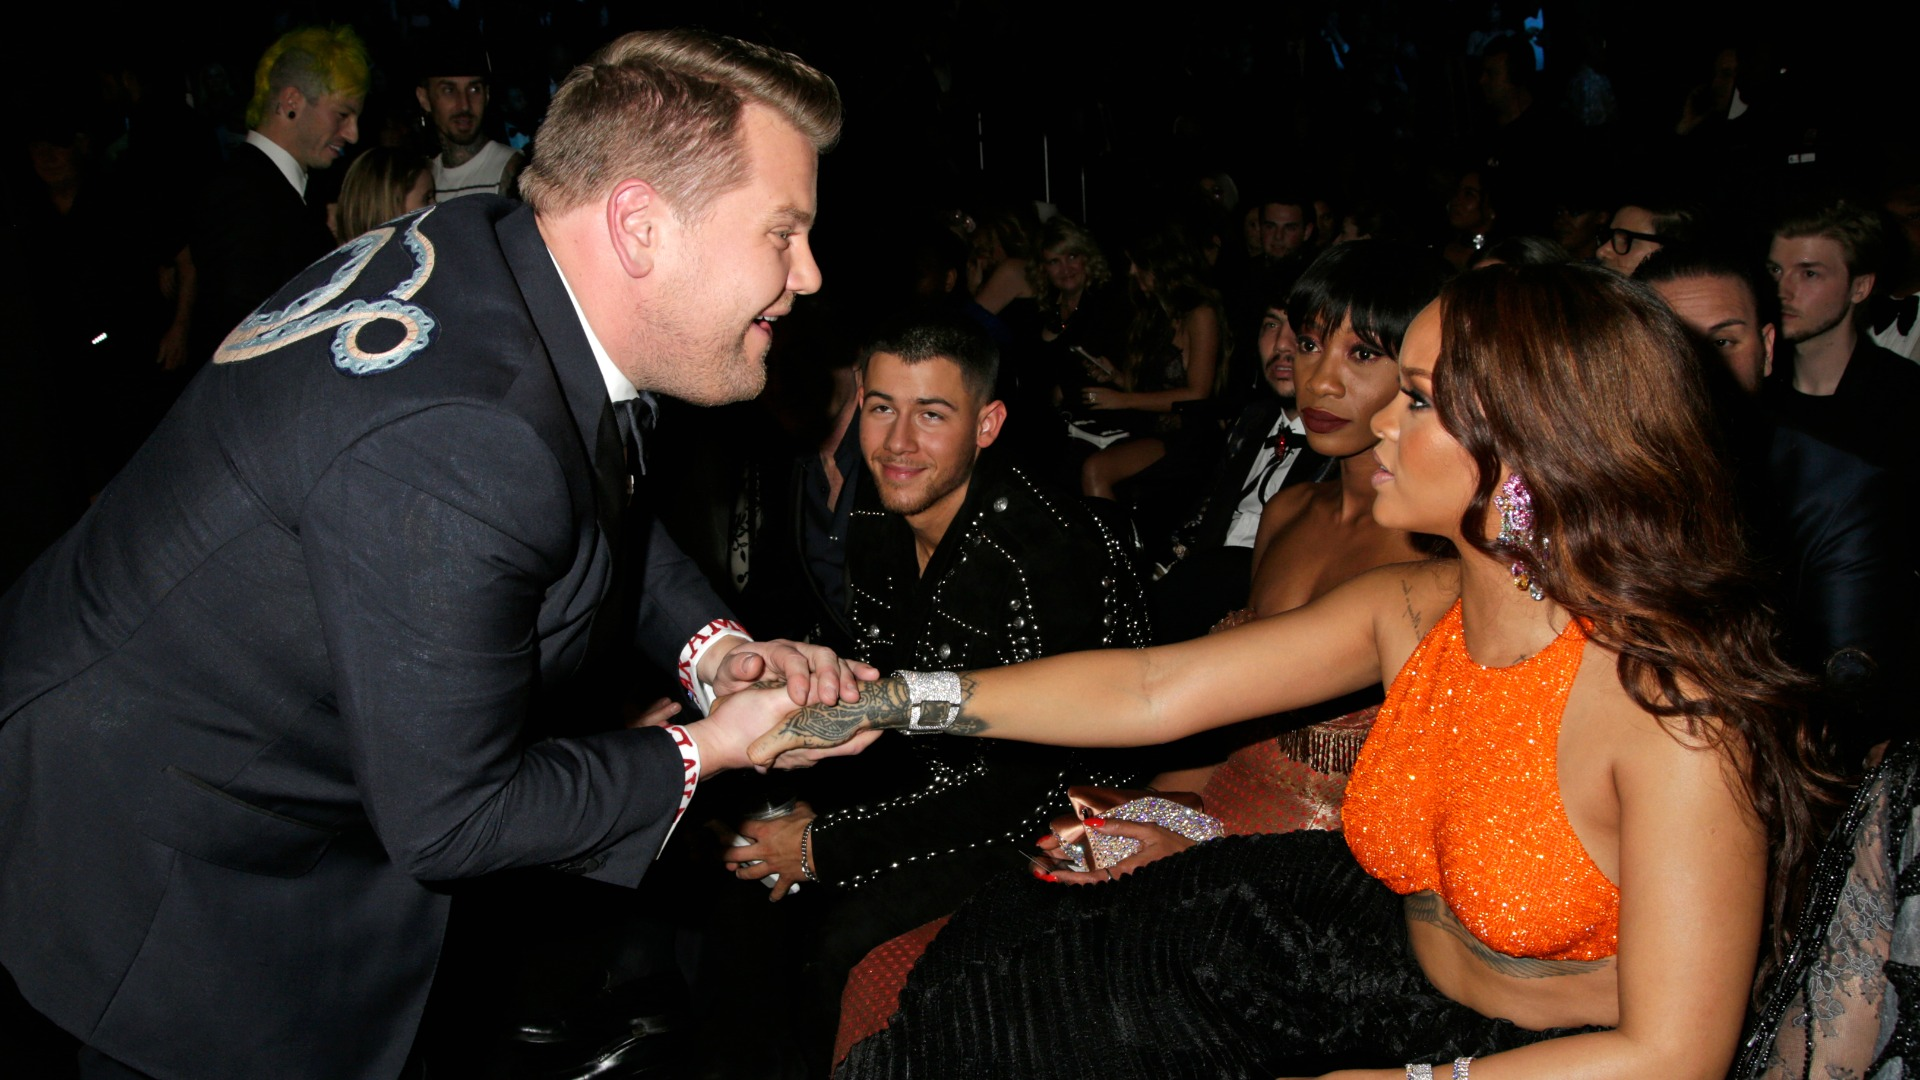 James Corden graciously reaches out for Rihanna's hand during a break in GRAMMY hosting duties.